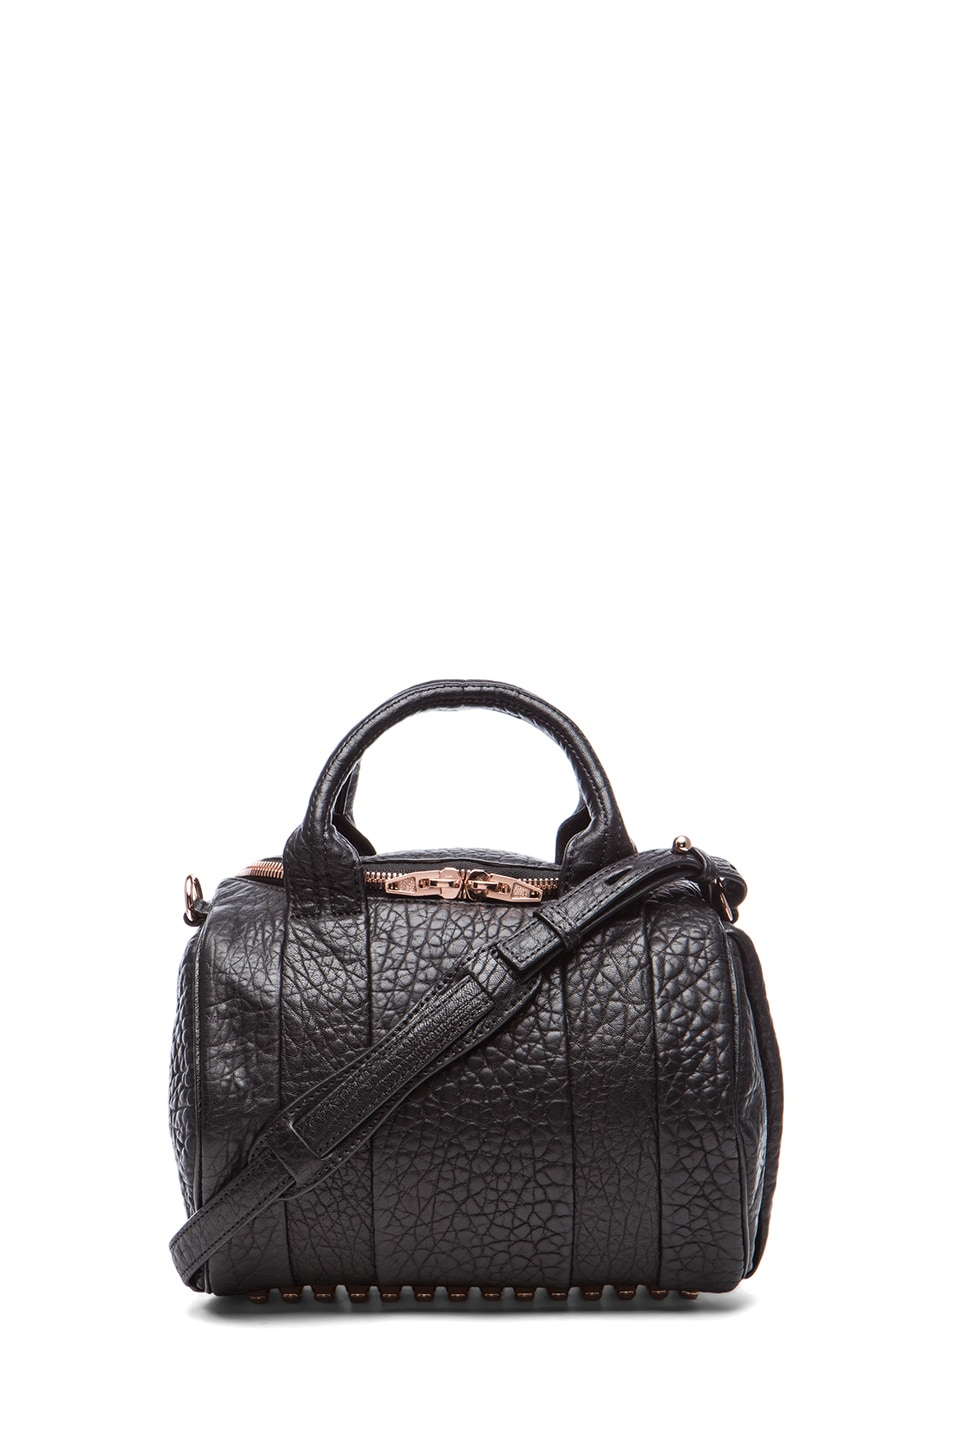 Image 1 of Alexander Wang Rockie Handbag with Rose Gold in Black